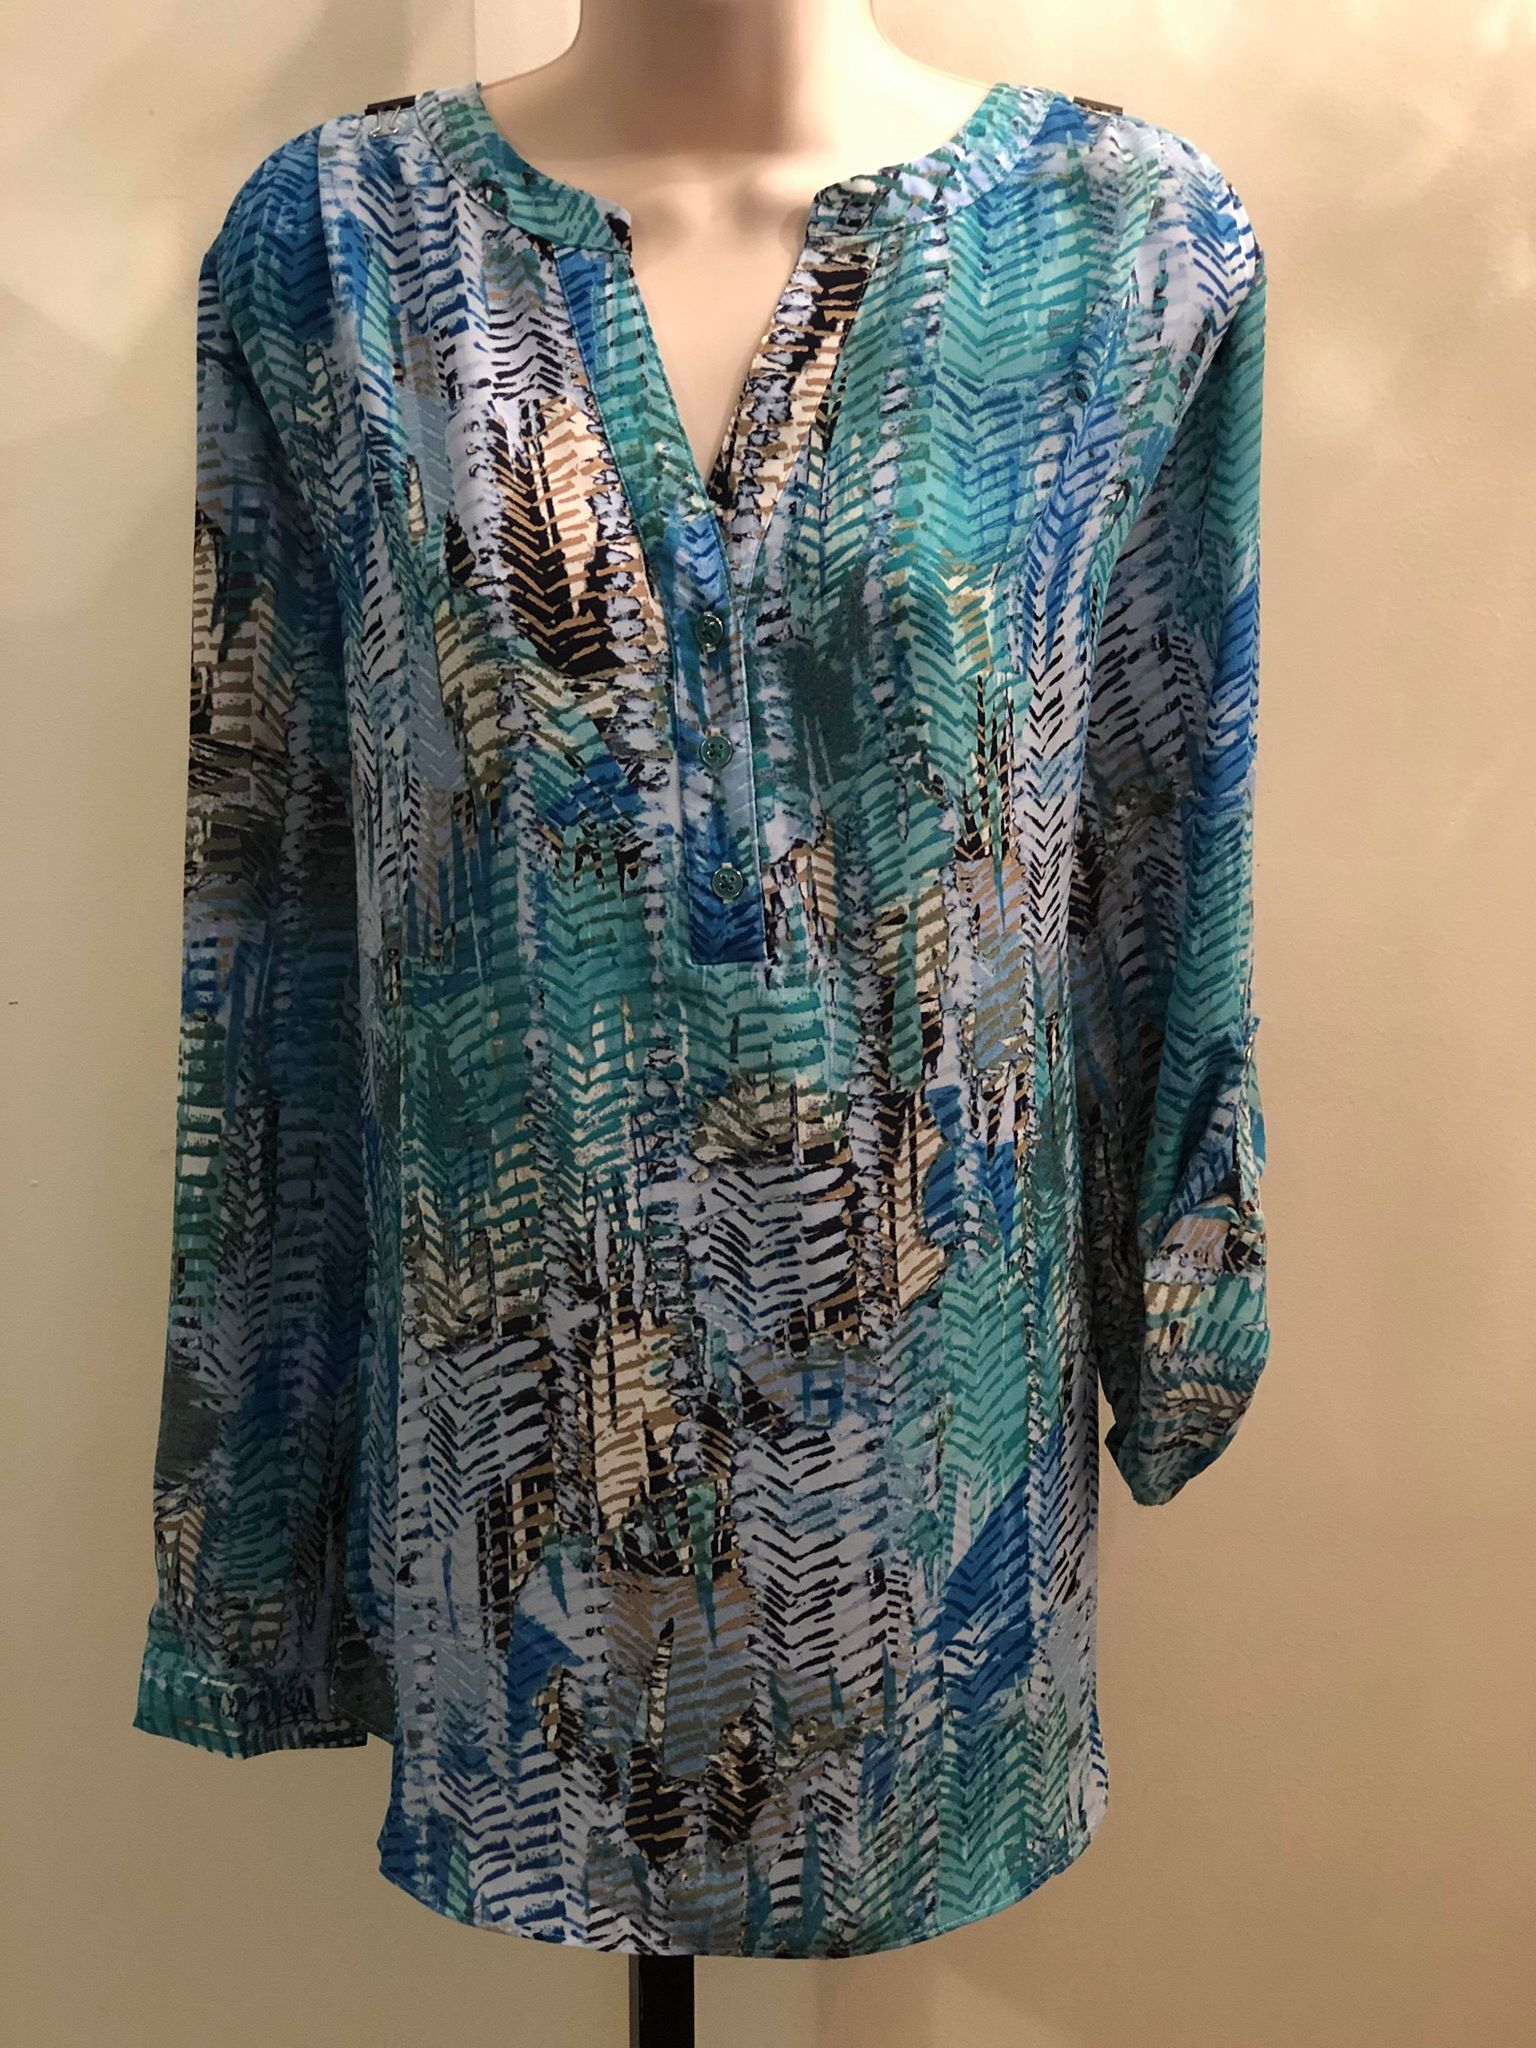 Curvy Teal Blue print top - M C and J